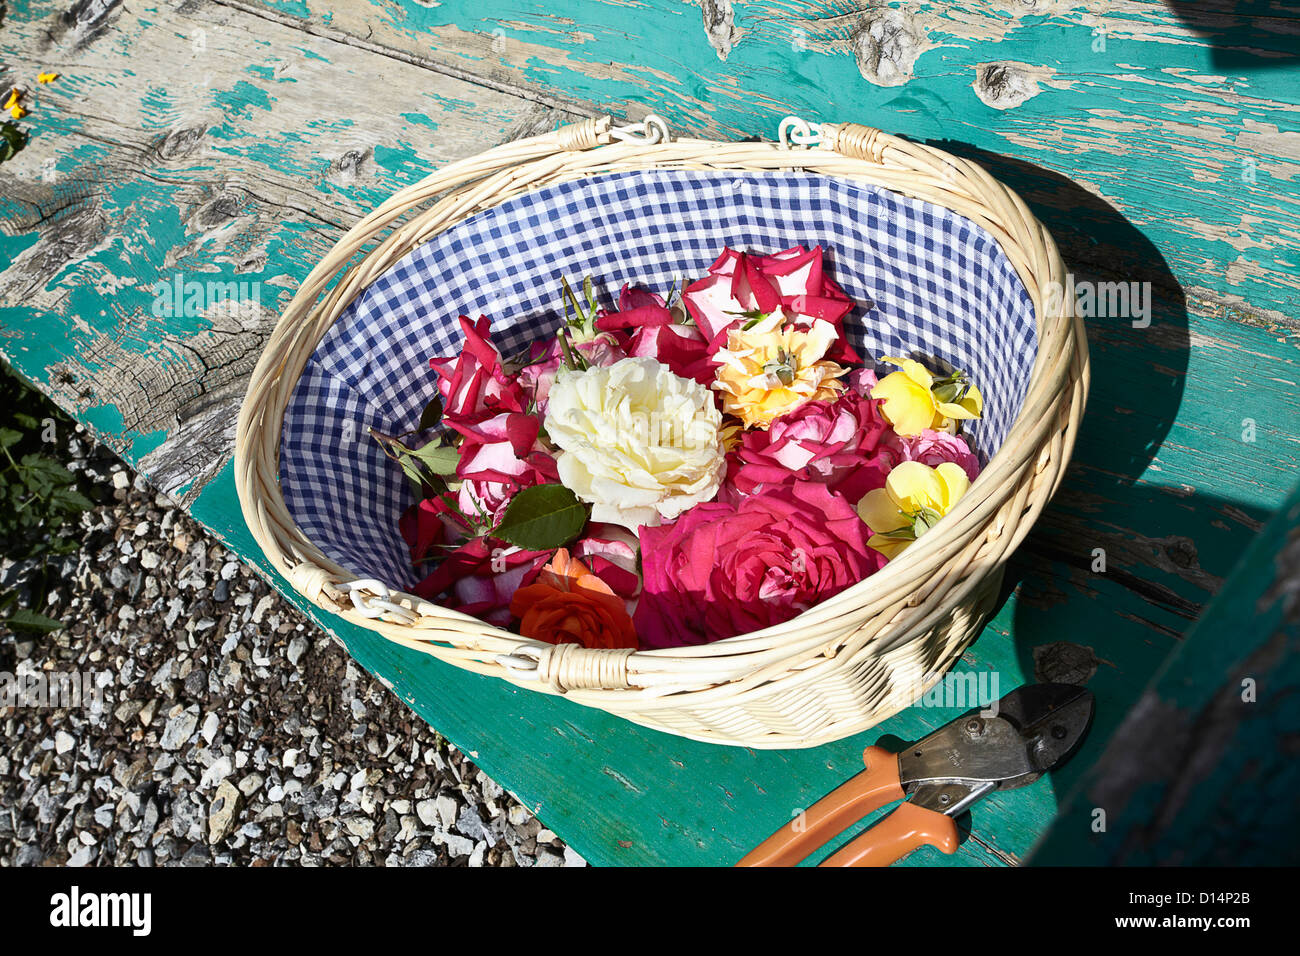 Basket of flowers on wooden bench Stock Photo